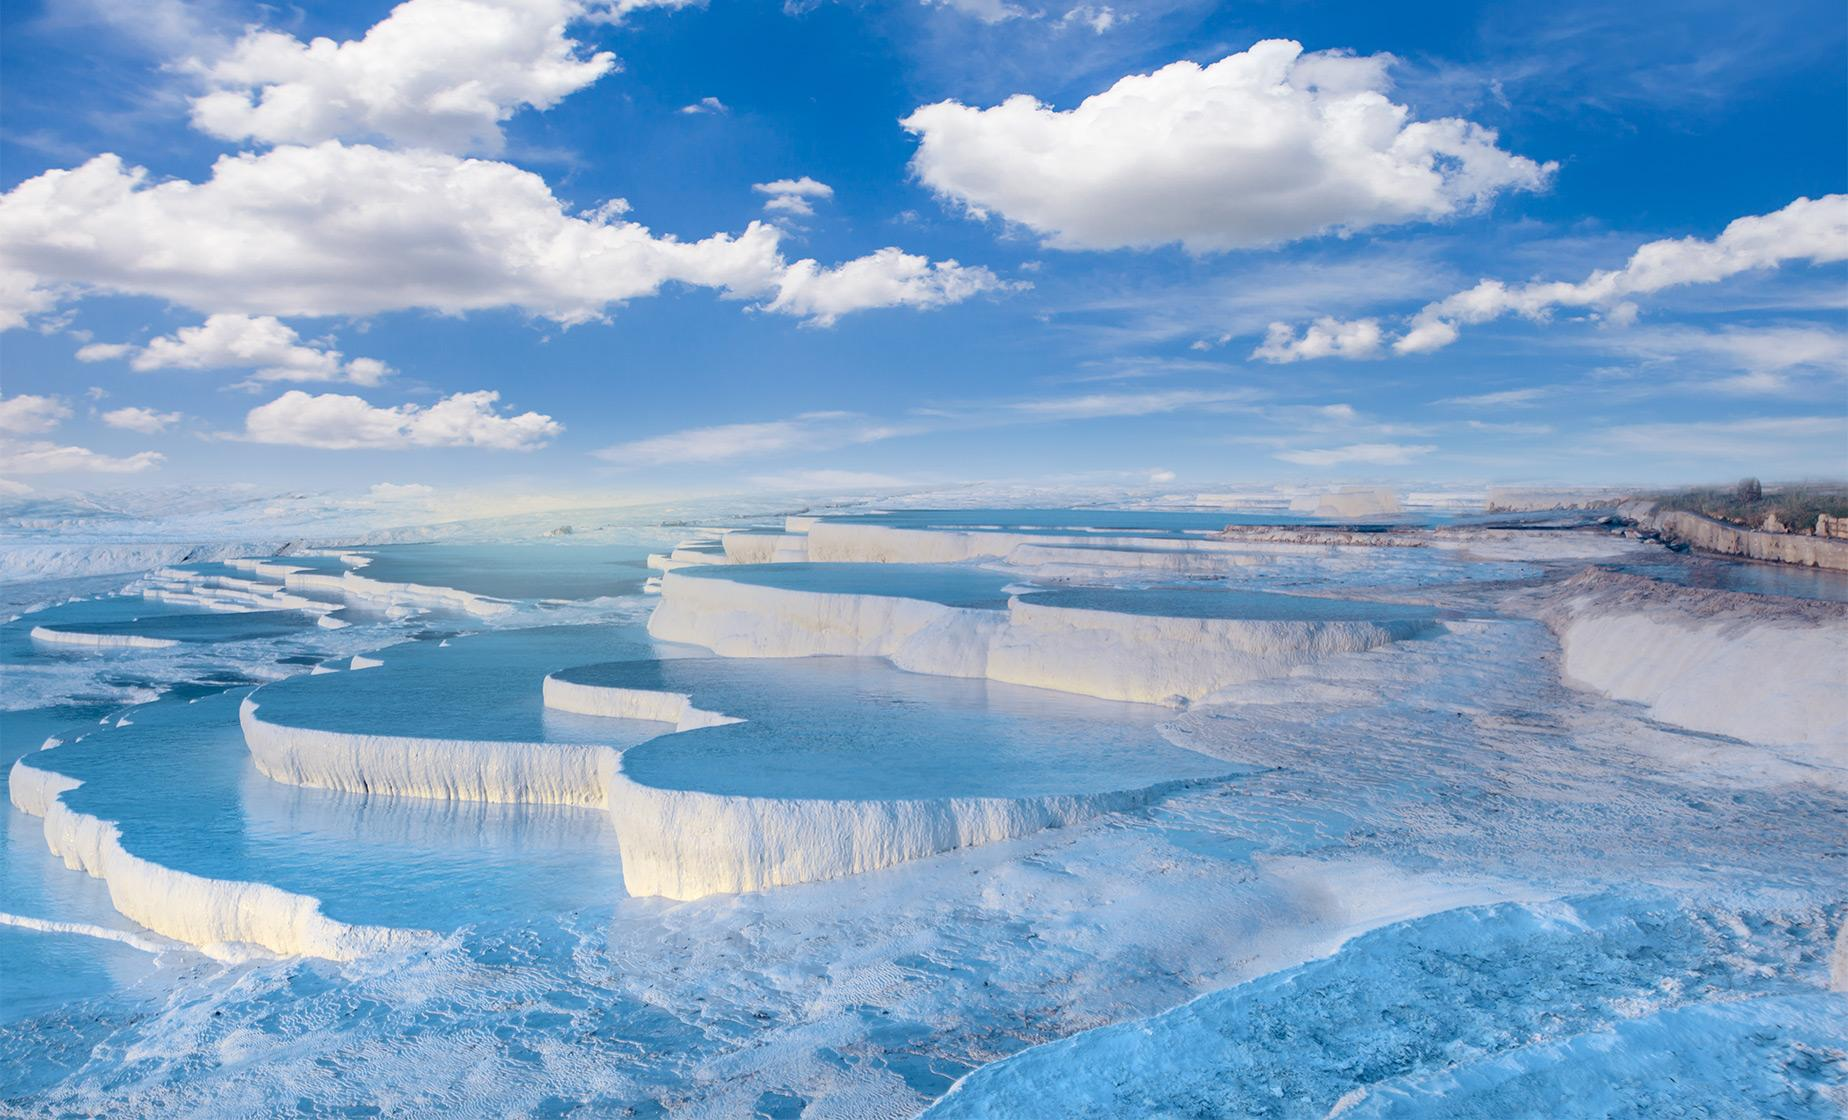 Pamukkale 'Cotton Castle' Highlights